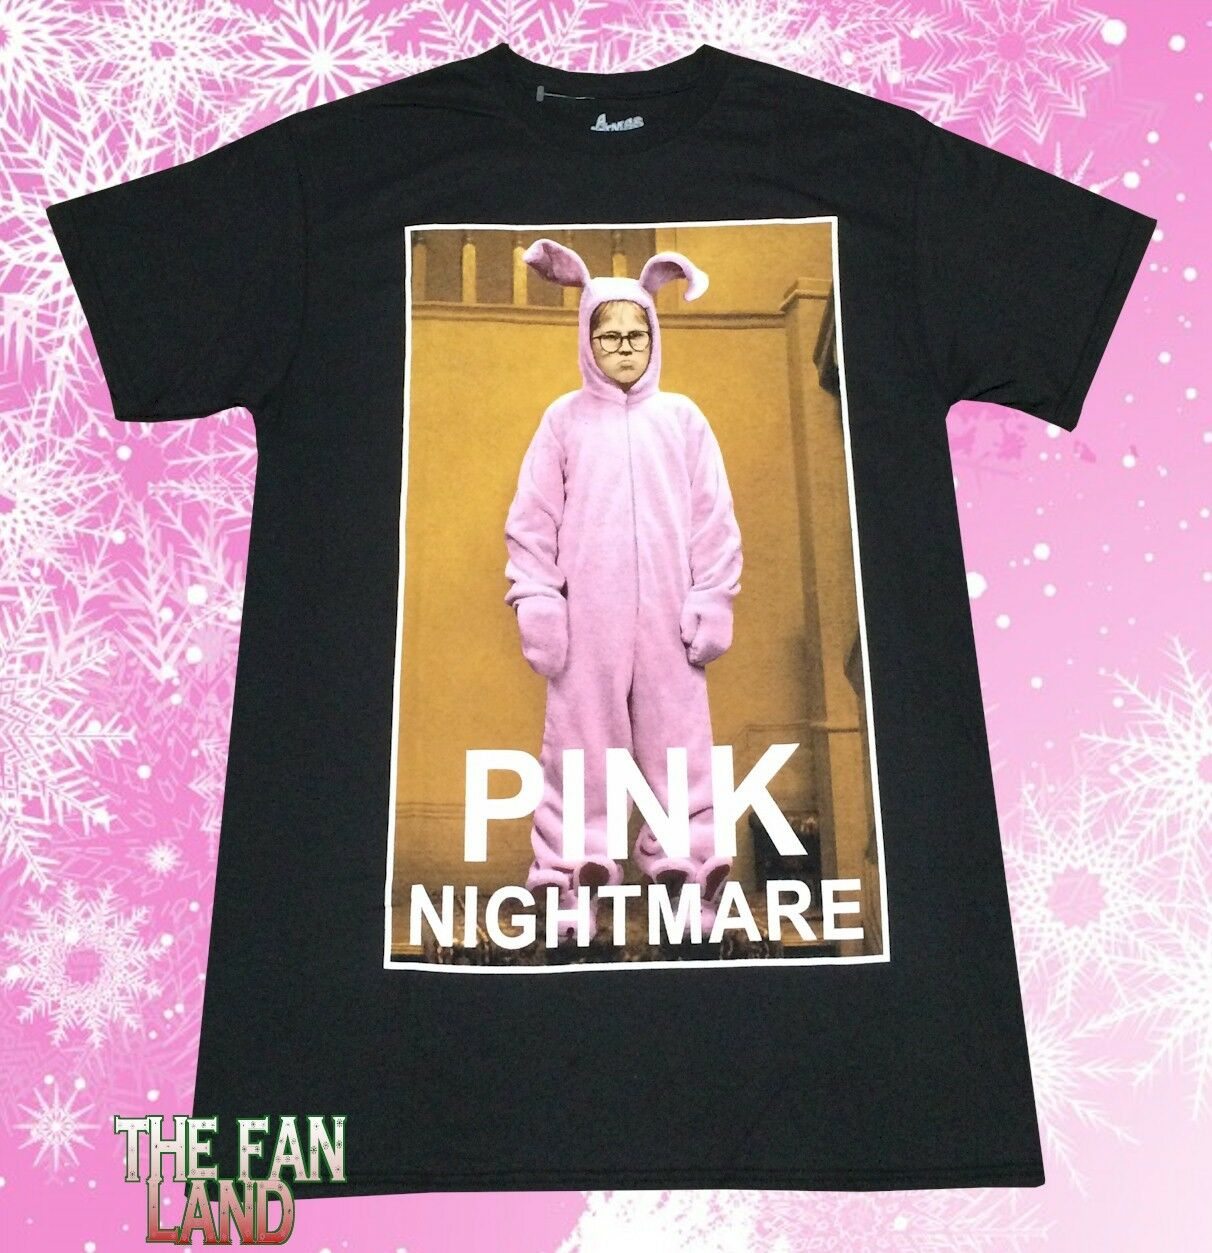 new a christmas story pink nightmare bunny pajamas photo mens vintage t shirt 1 of 1free shipping